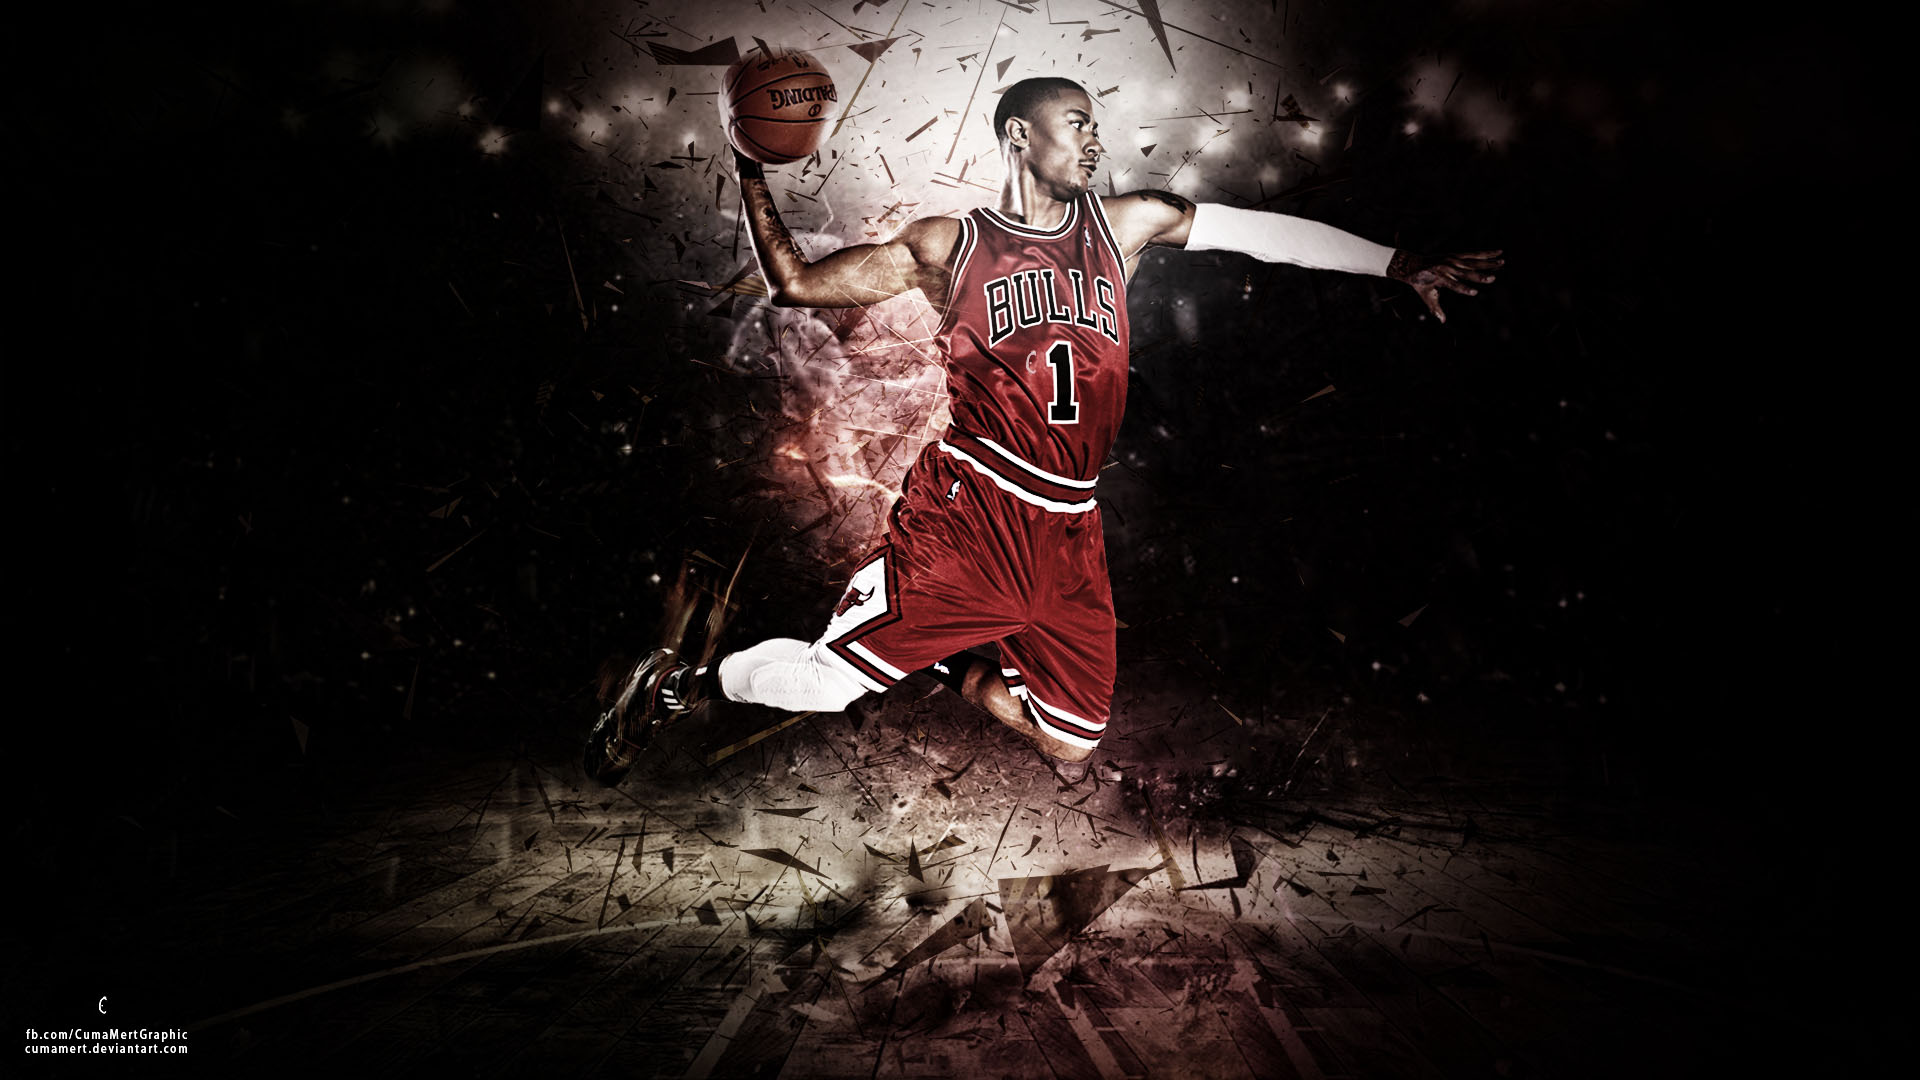 Derrick Rose Dunk On LeBron James   wallpaper 1920x1080